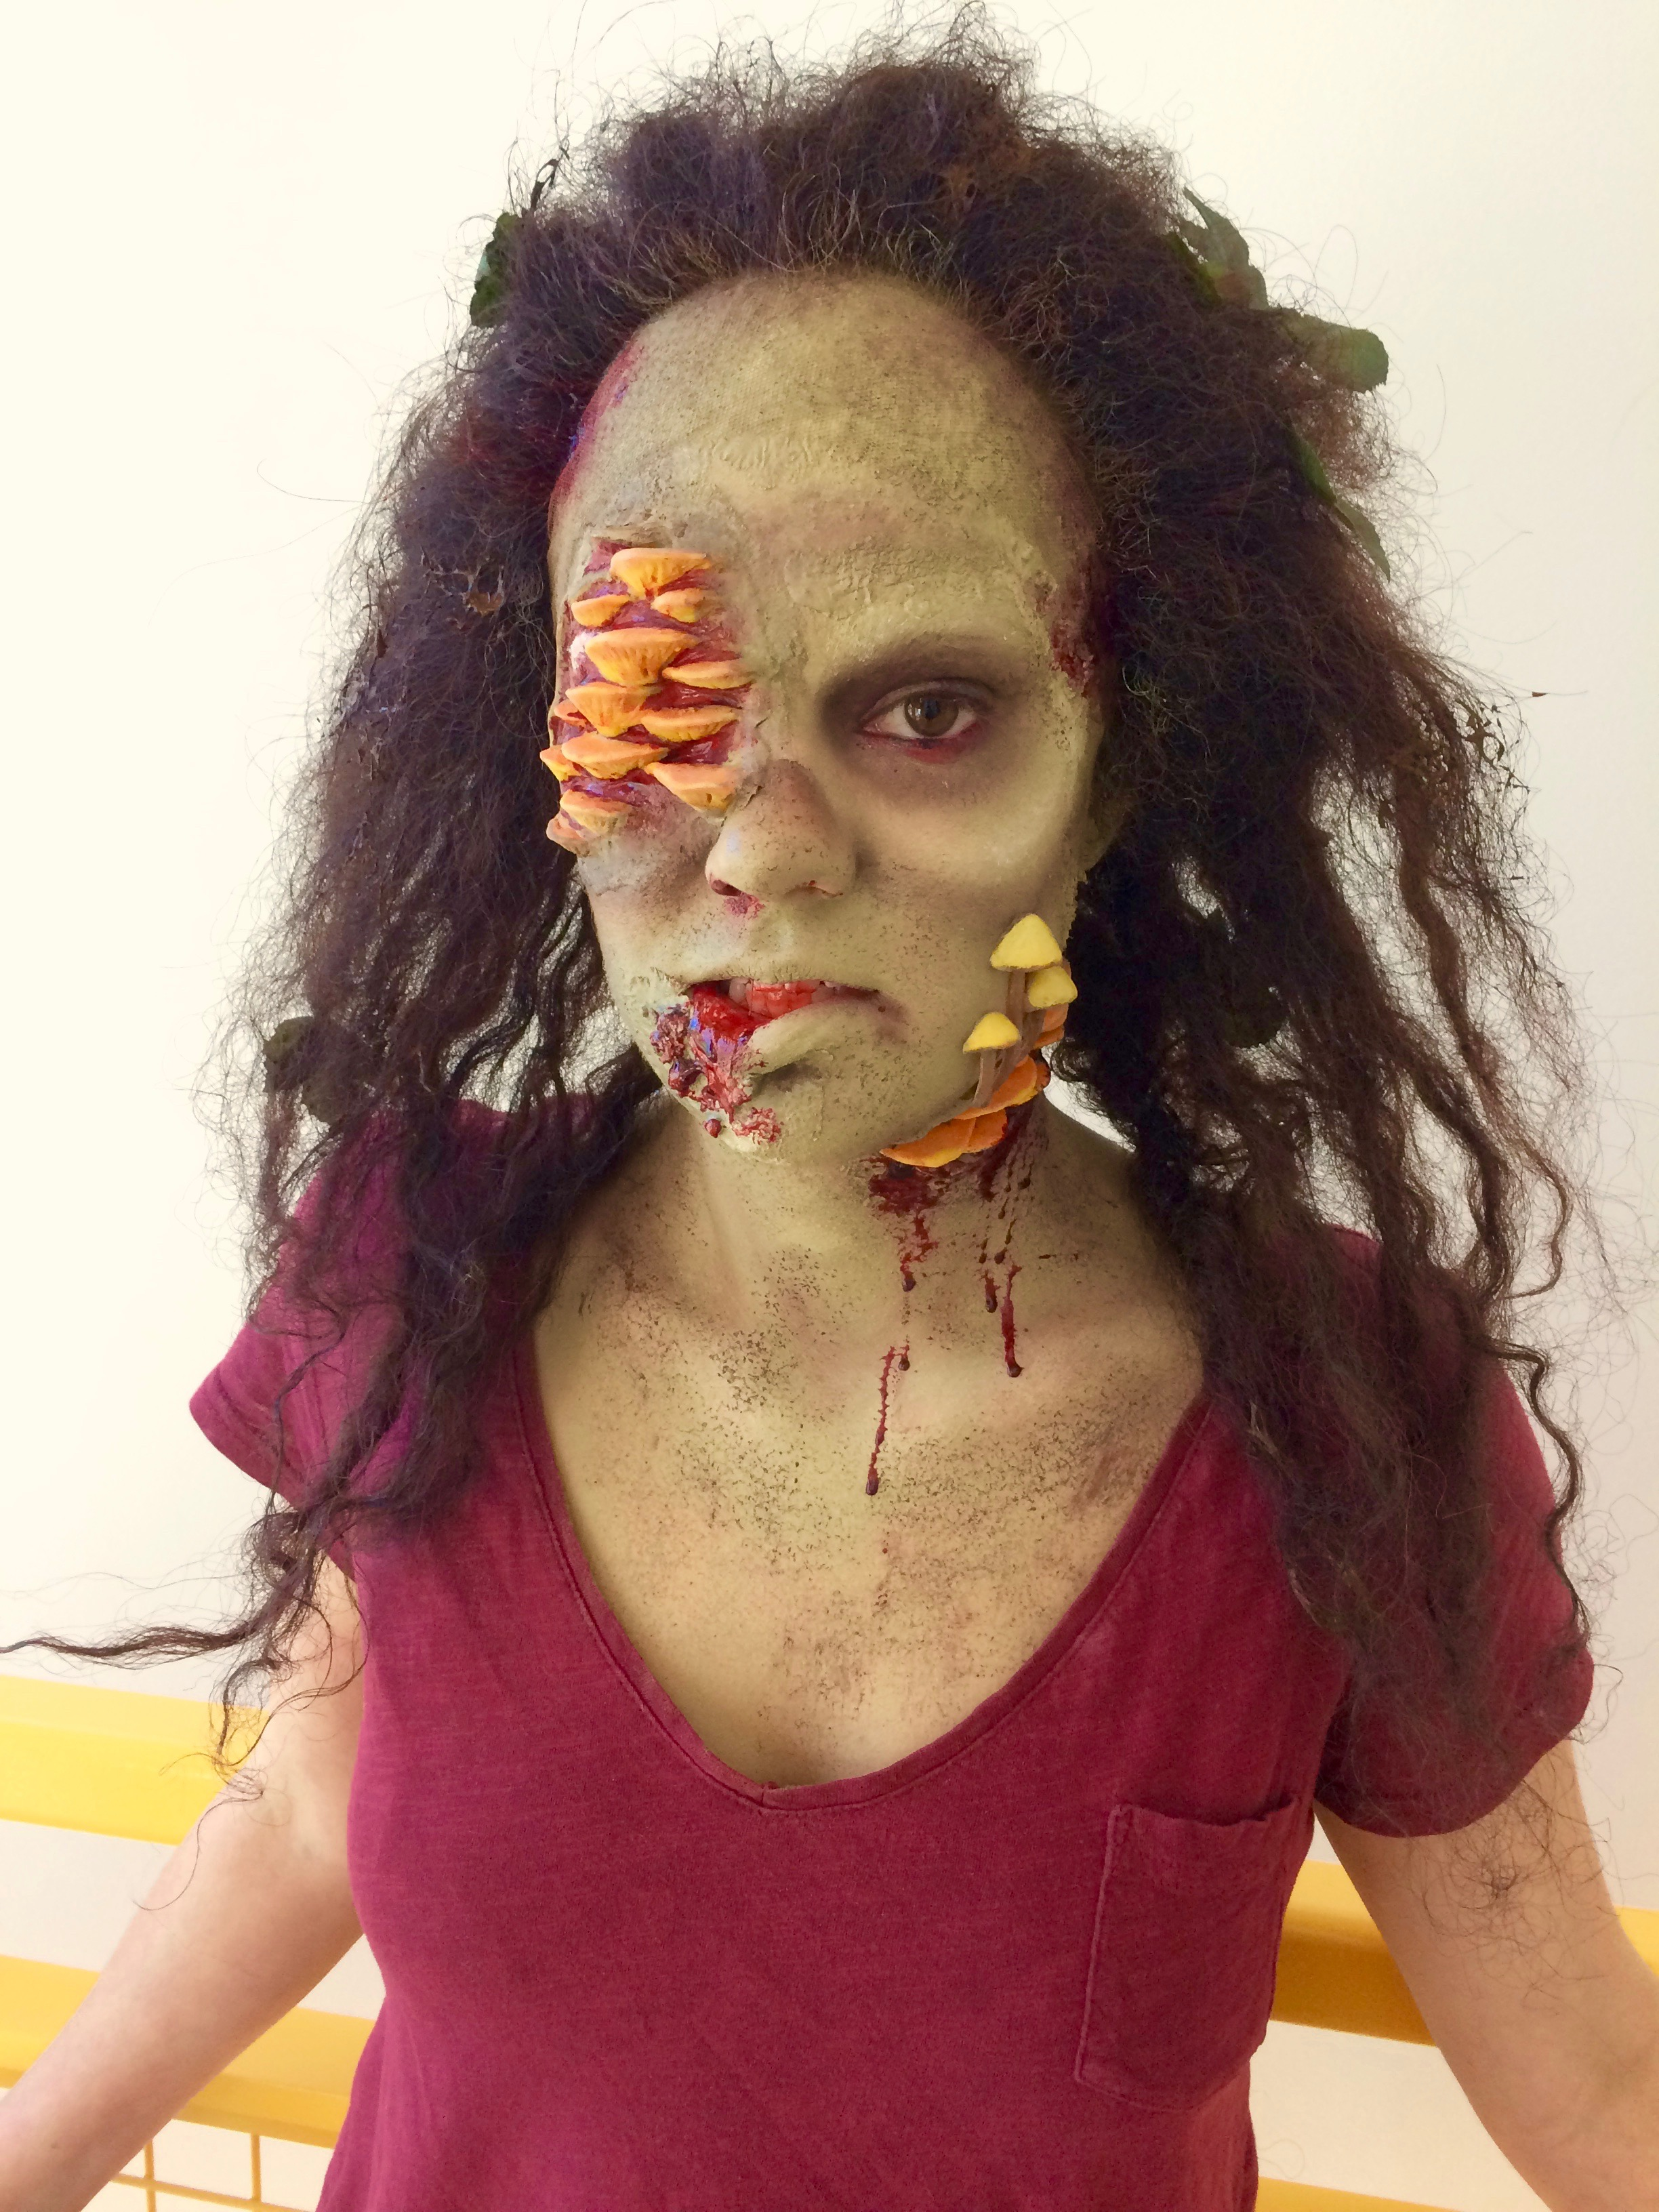 Woodland Zombie makeup project - Silicone prosthetics, latex bald cap, fronted and styled wig